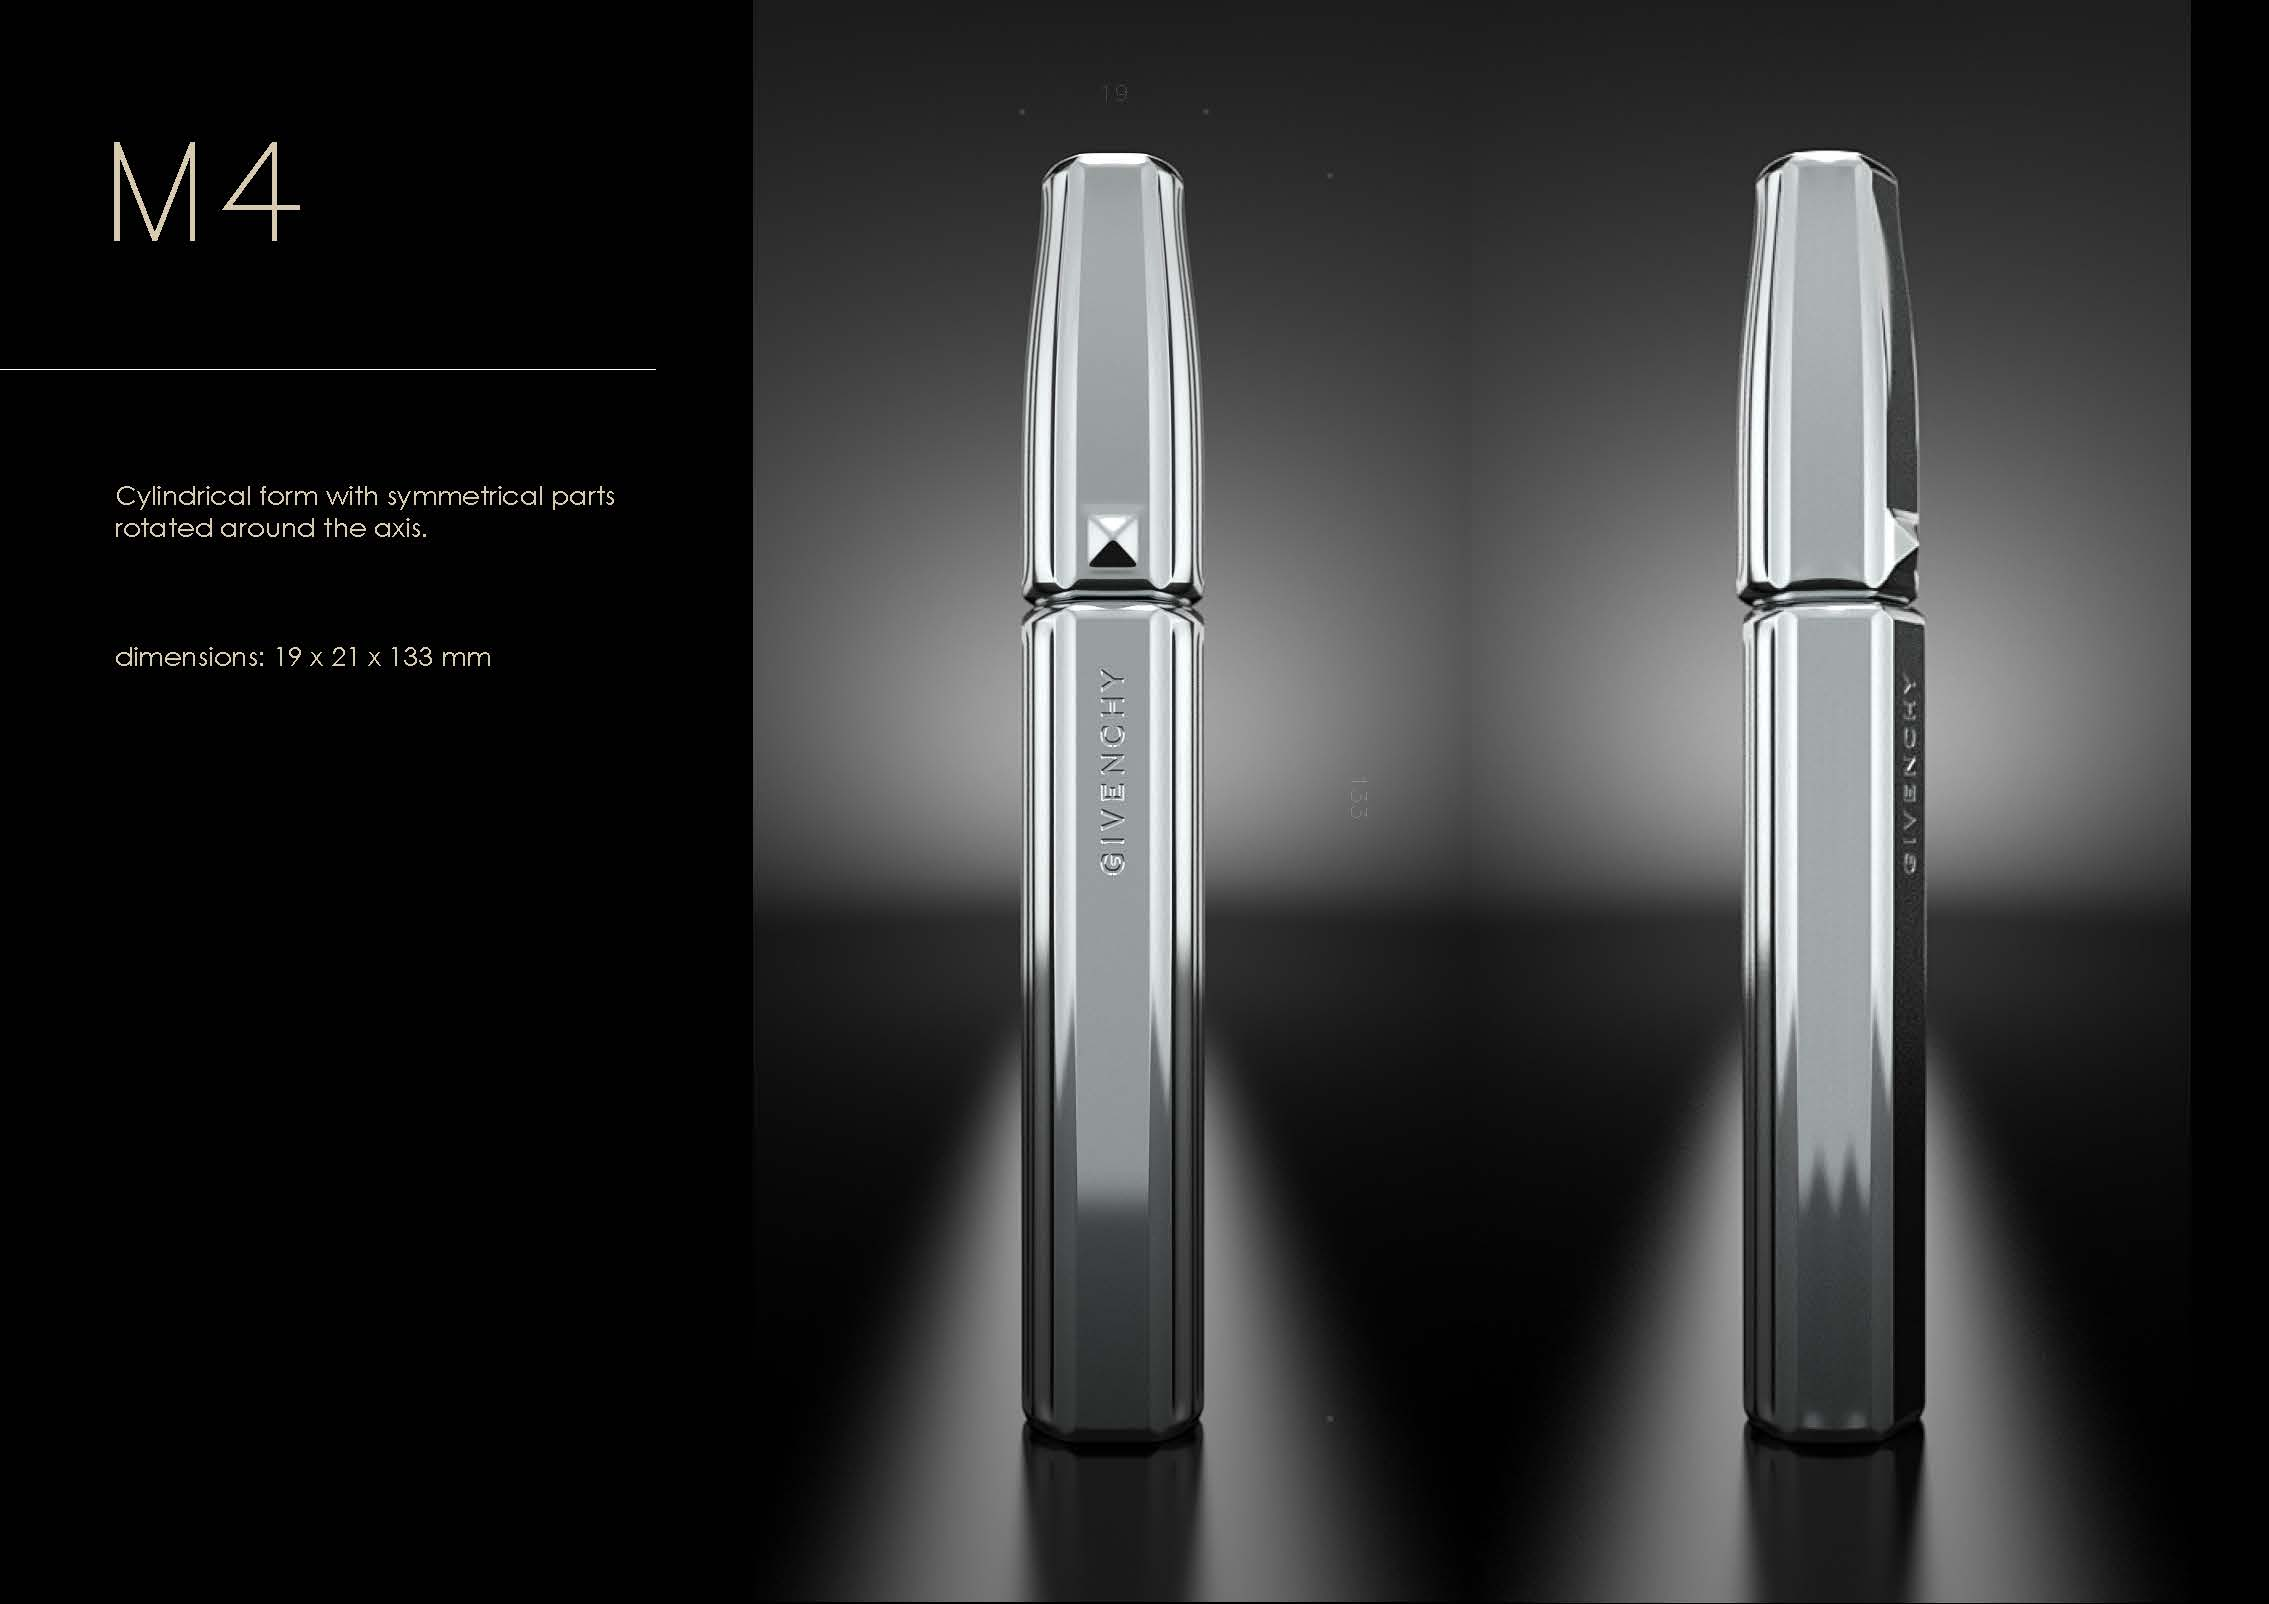 Givenchy mascaras w dimensions, I_Page_10.jpg